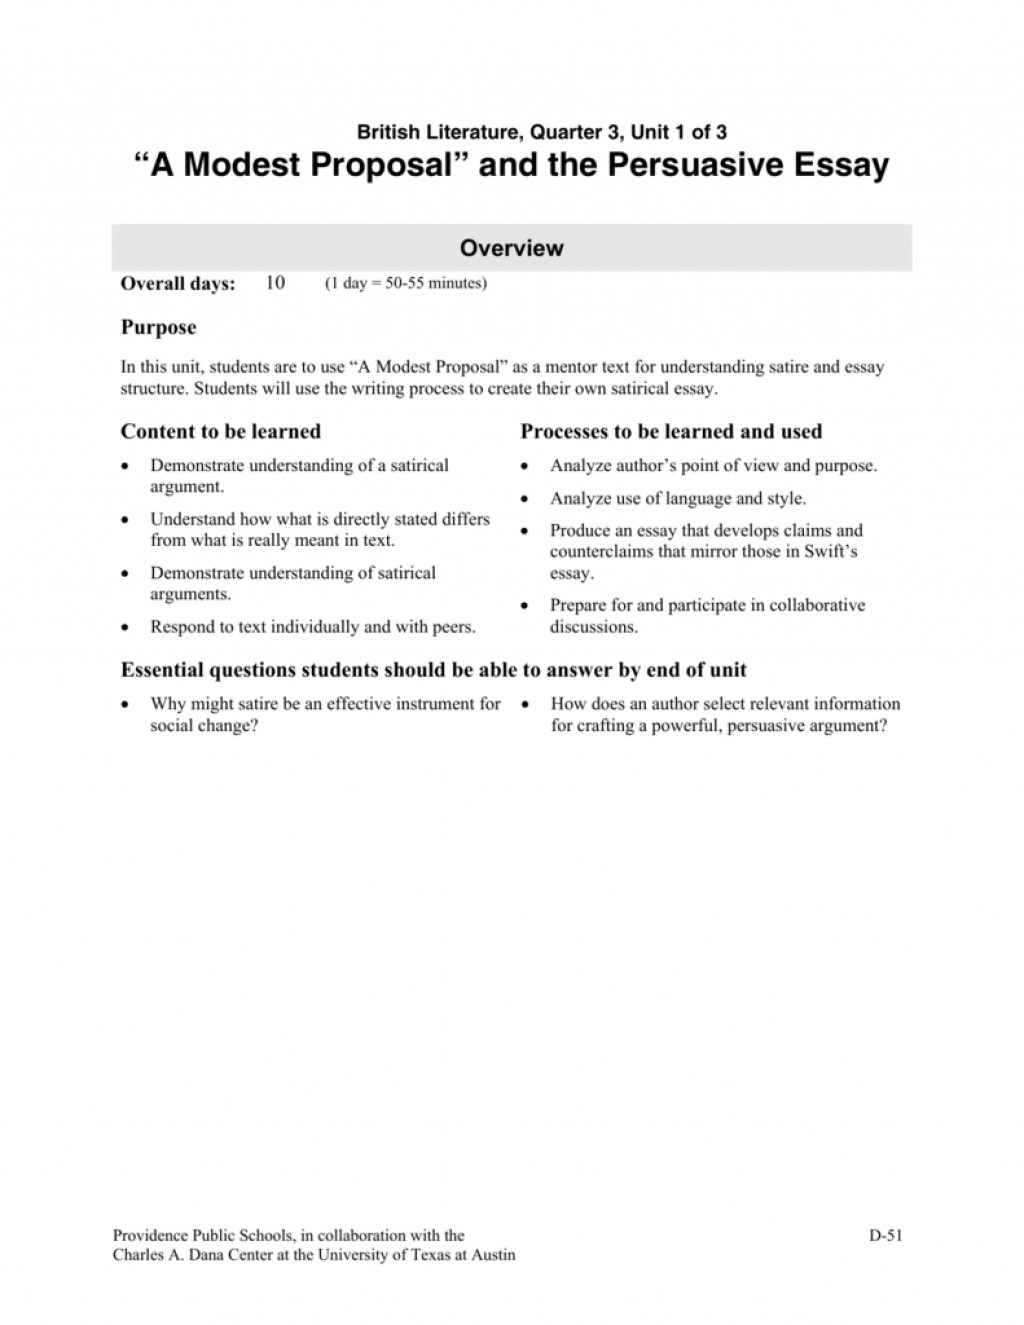 007 Modest Proposal Essay Example 008803036 1 Astounding A 50 Essays Questions Large